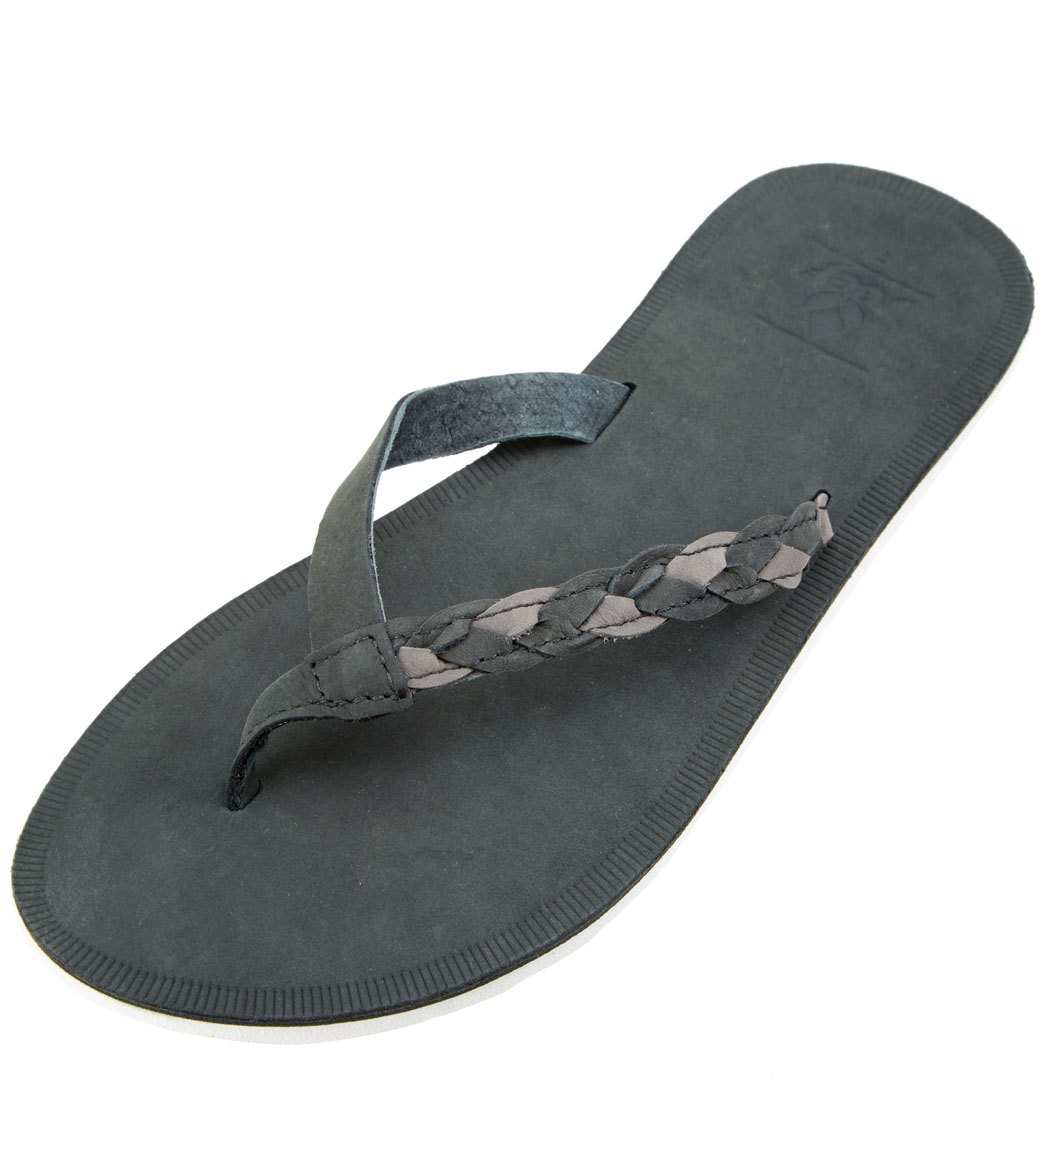 82072ebd8 Reef Women s Voyage Sunset Leather Flip Flop at SwimOutlet.com - Free  Shipping